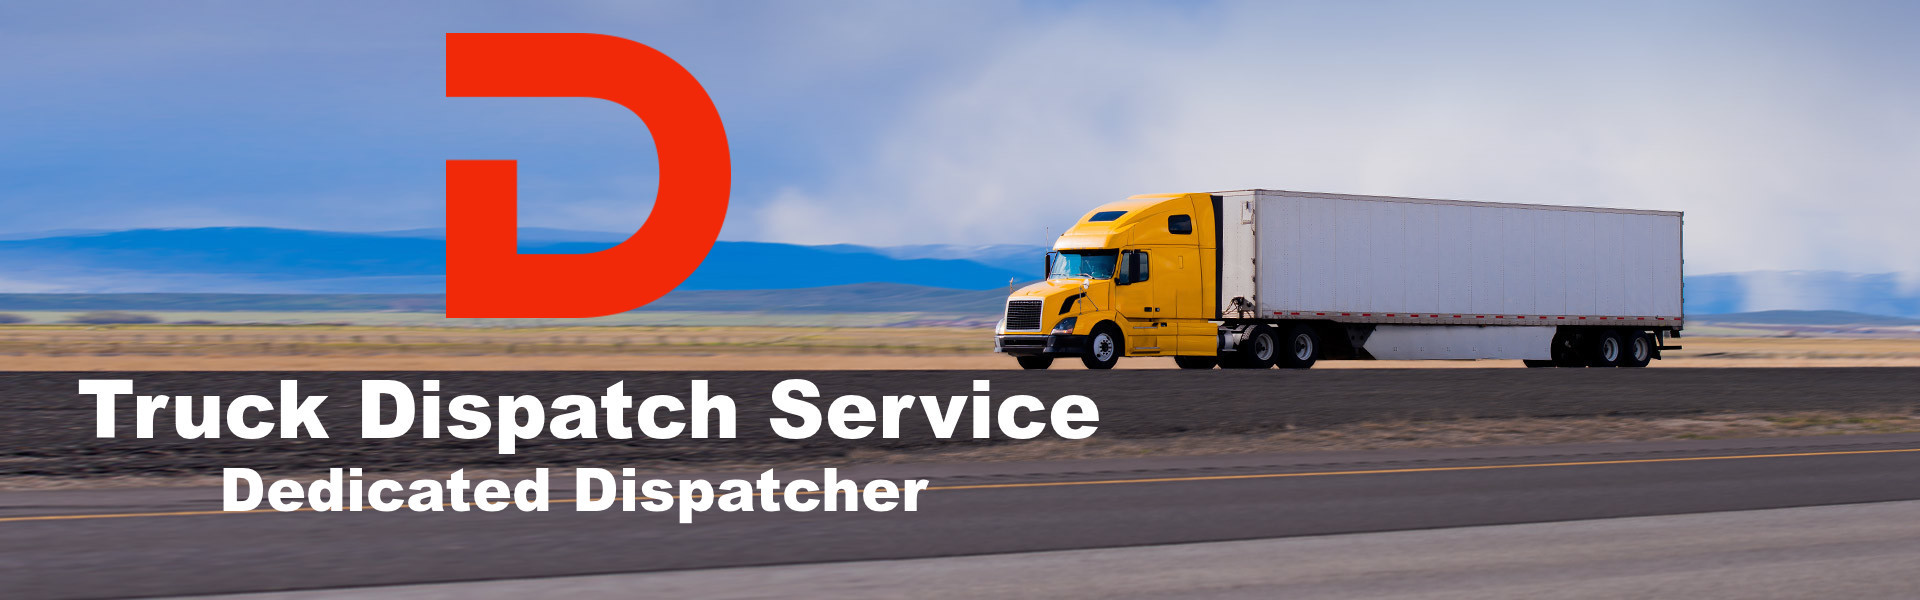 Doft Truck Dispatching